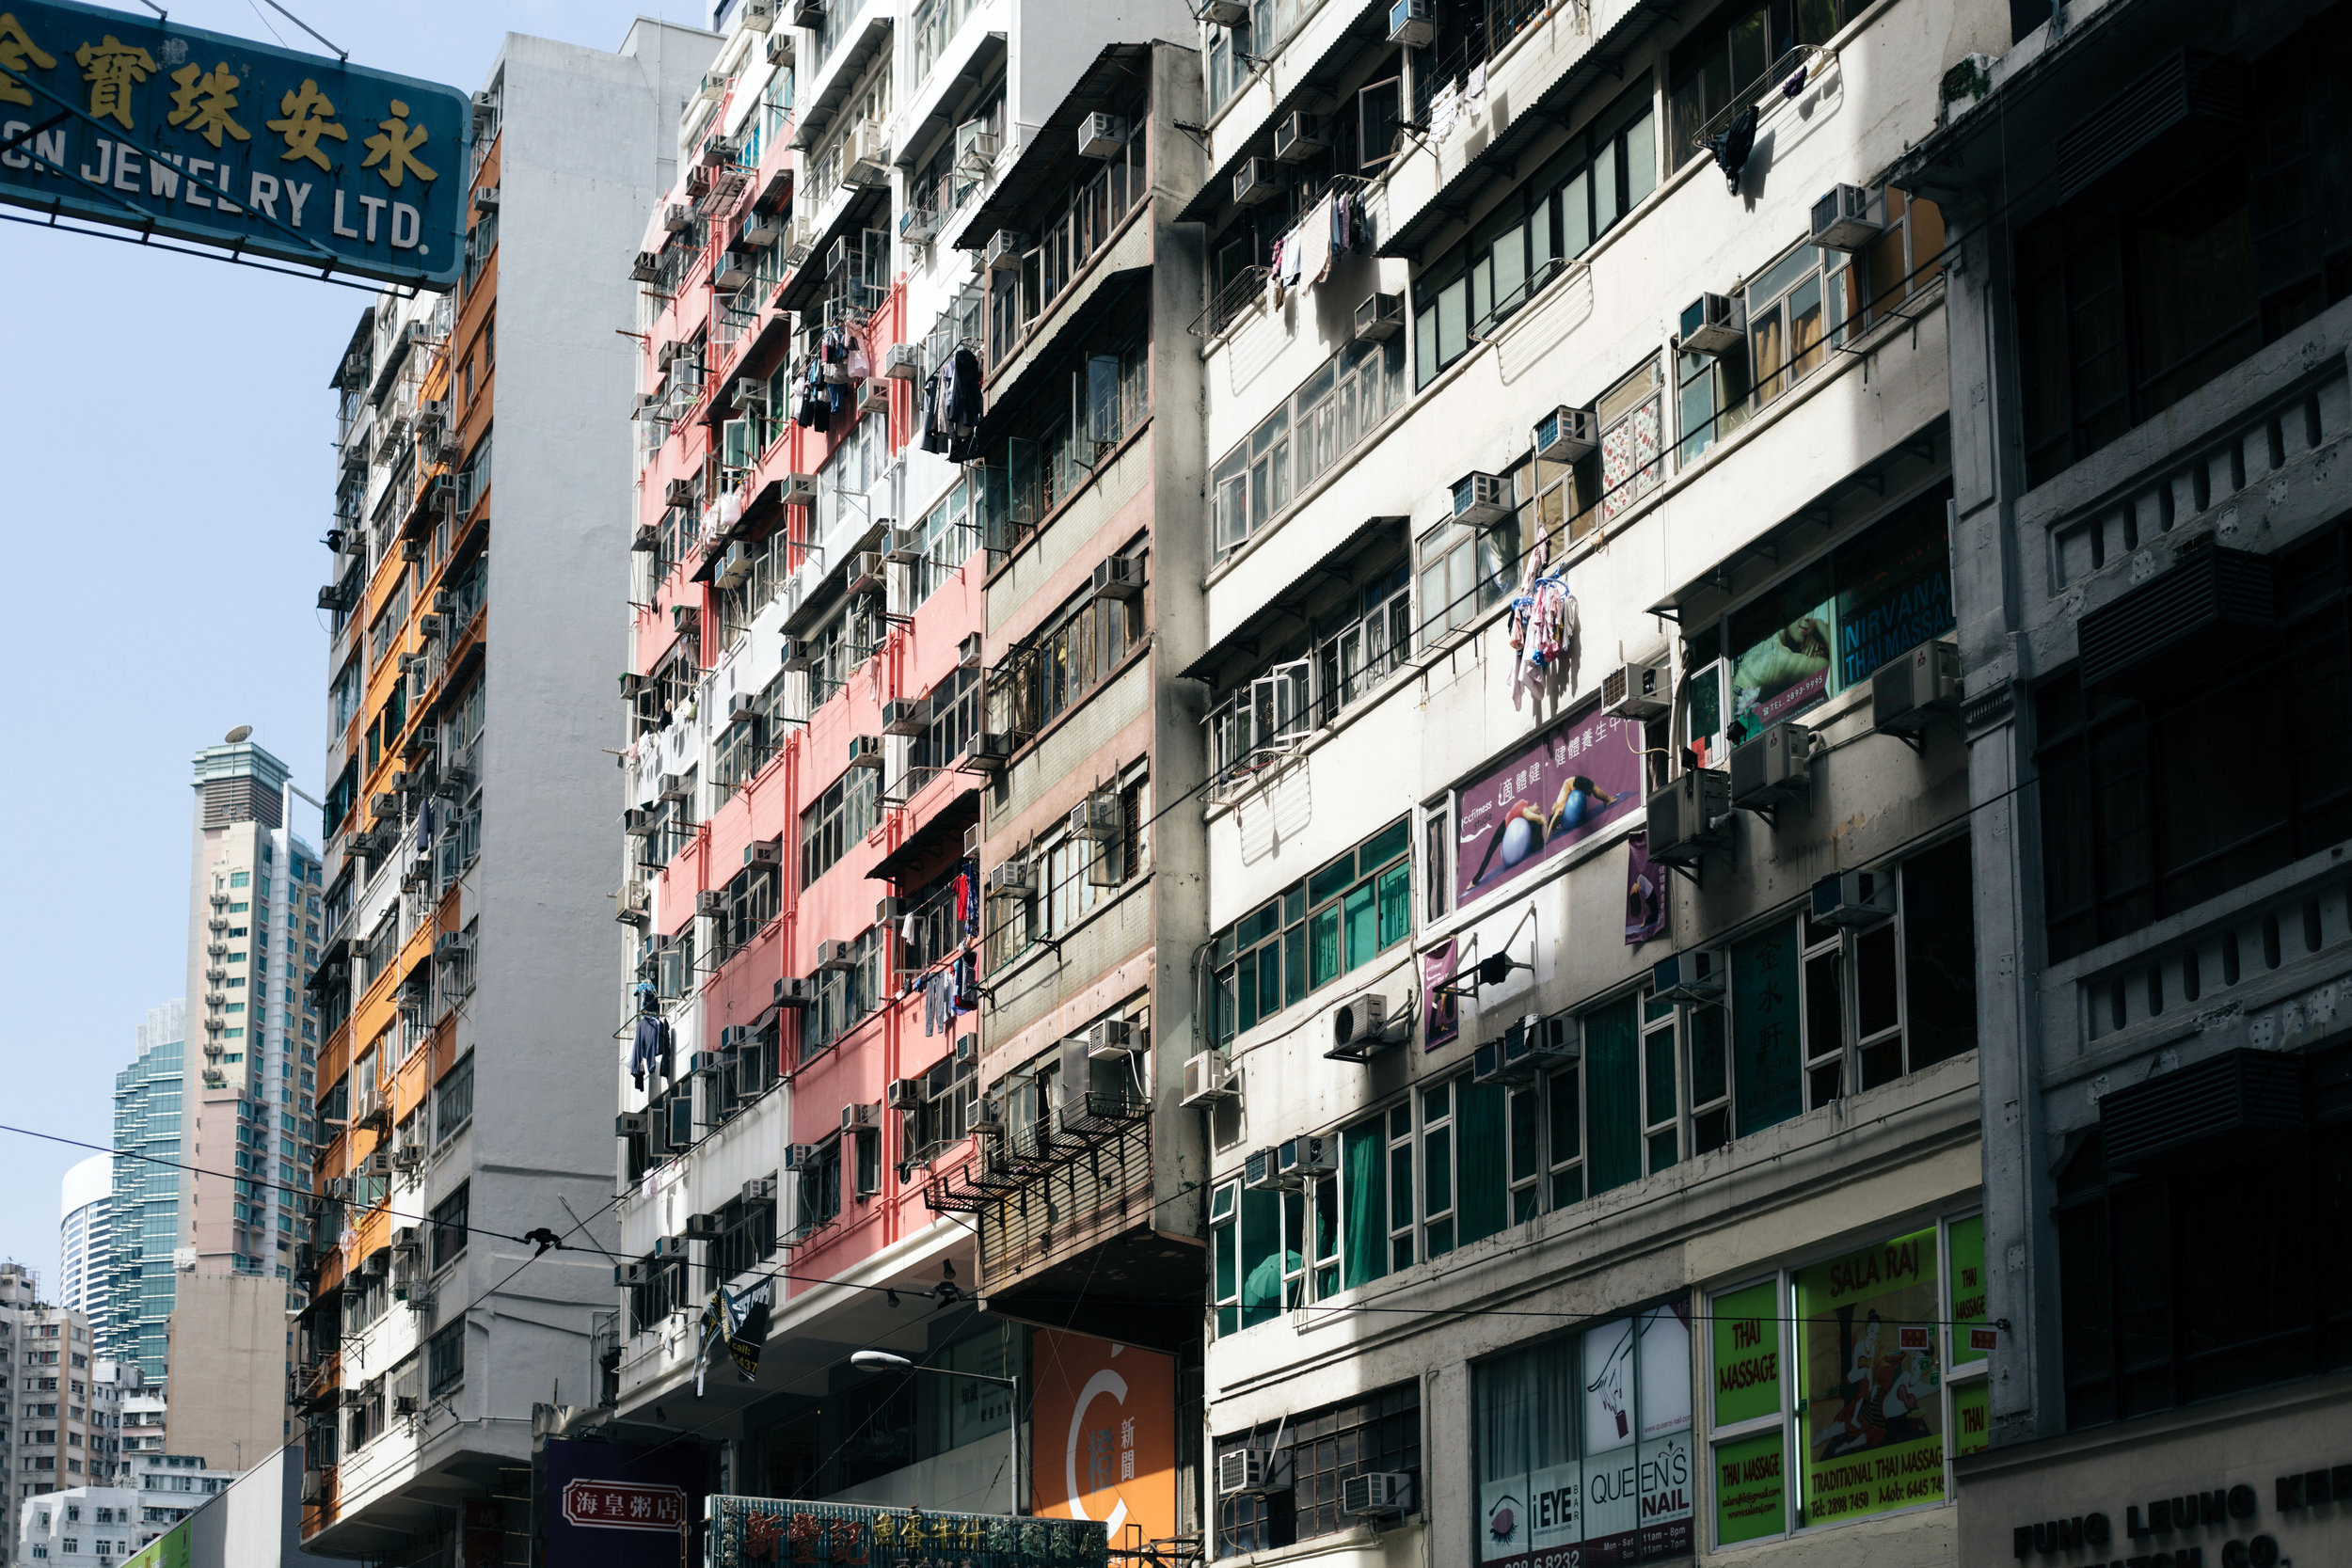 Residential area in decay in the Wan Chai district of Hong Kong